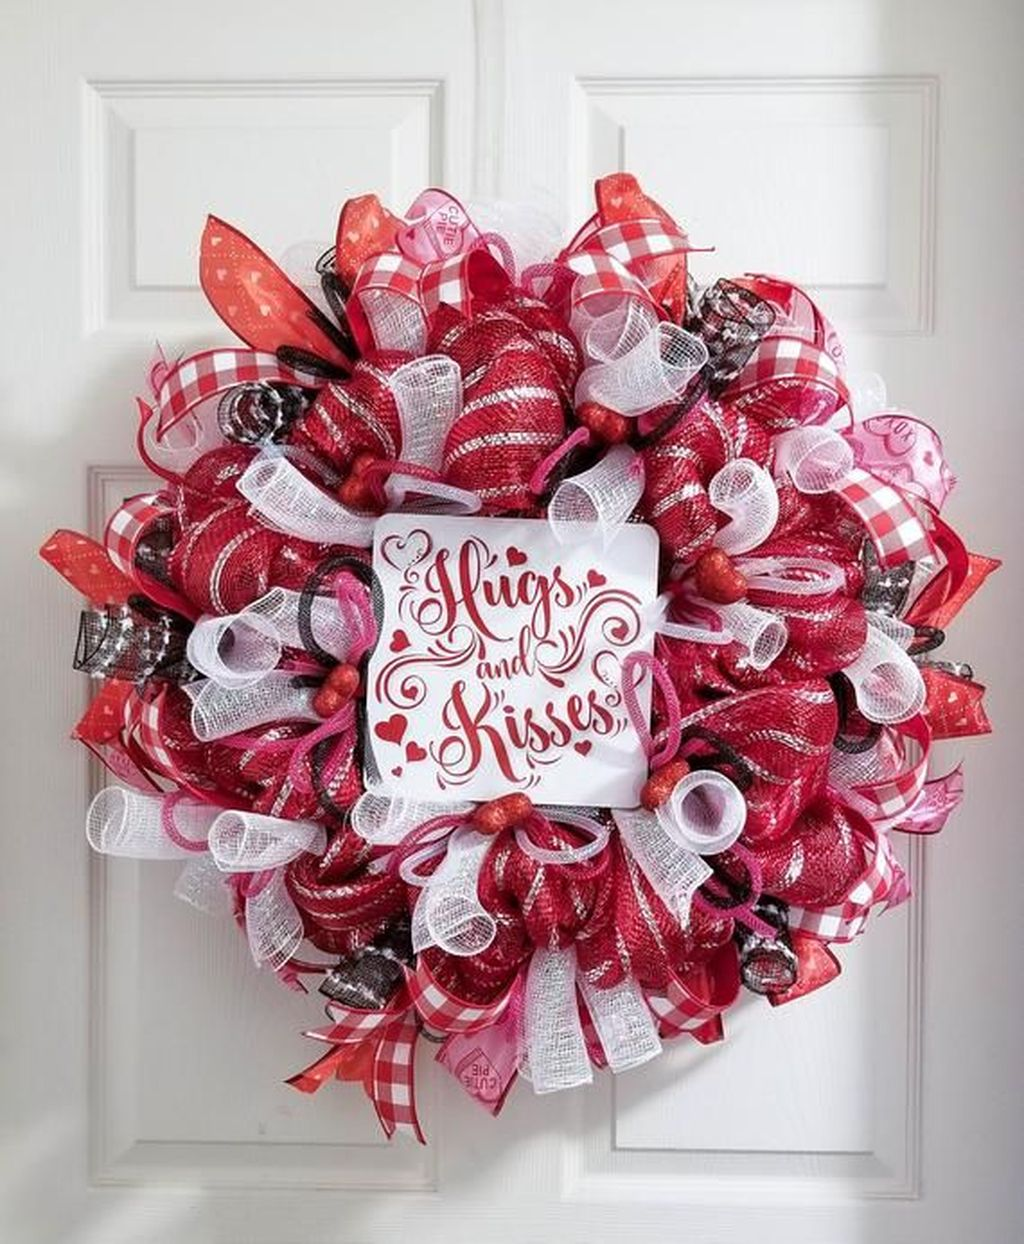 Fabulous Valentine Wreath Design Ideas FOr Your Front Door Decor 18